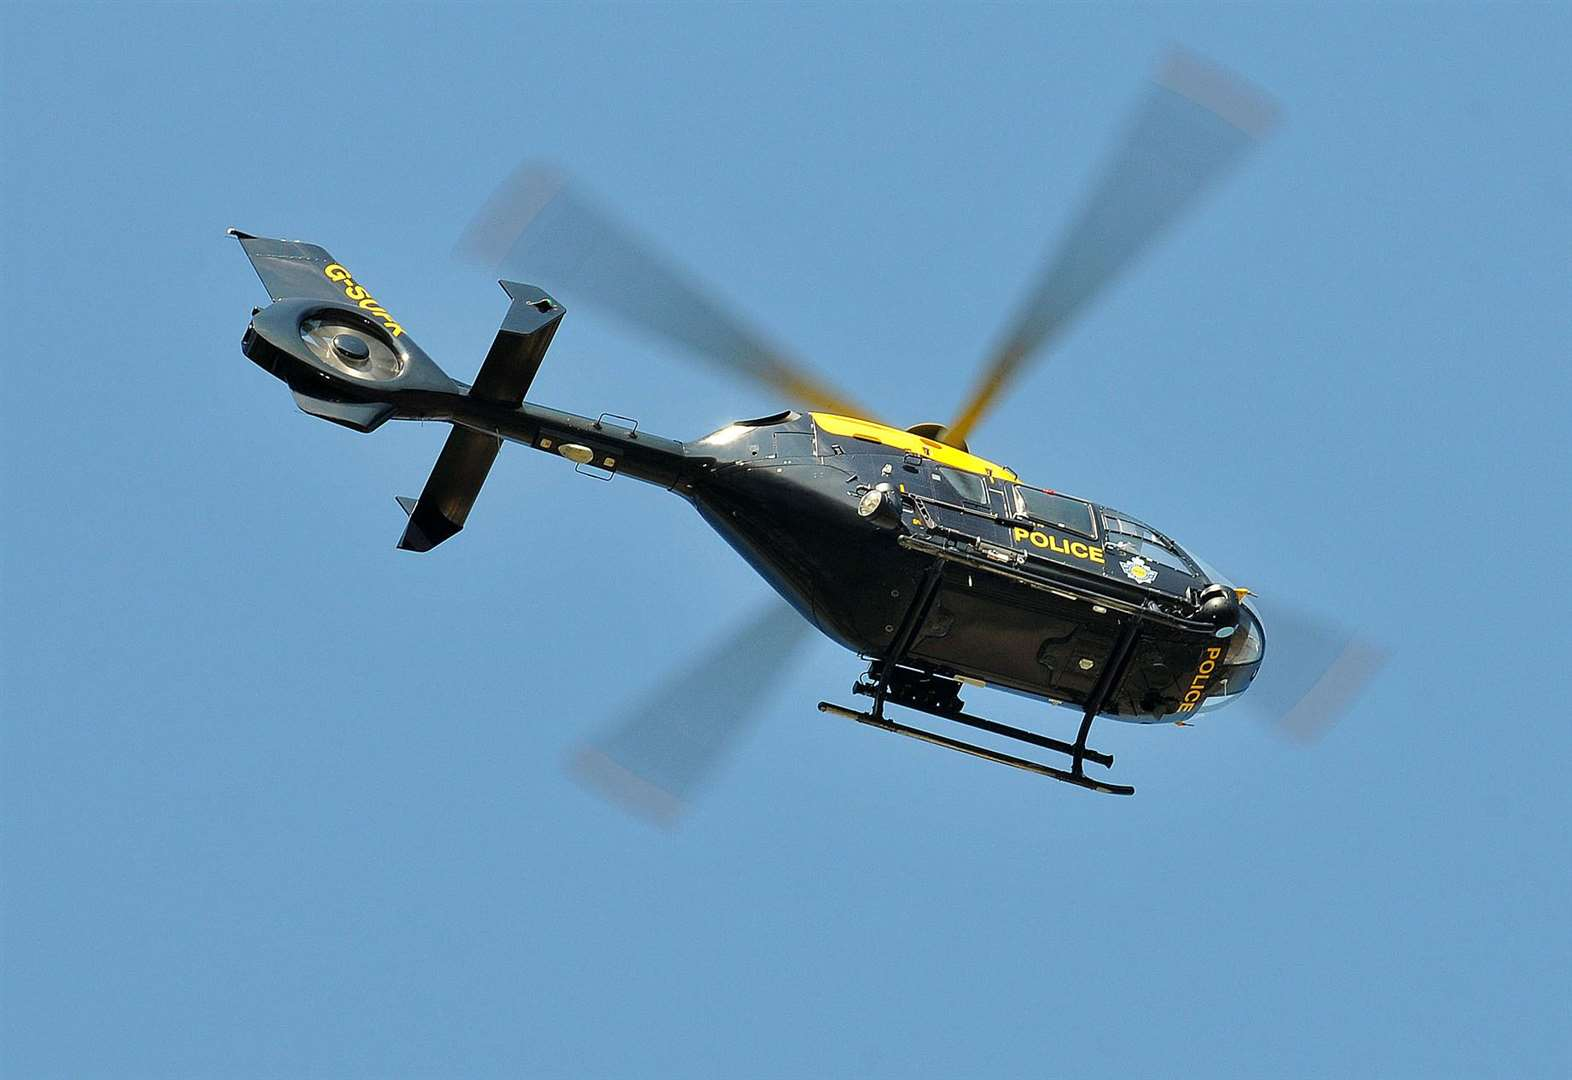 Helicopter launched in search for missing girl